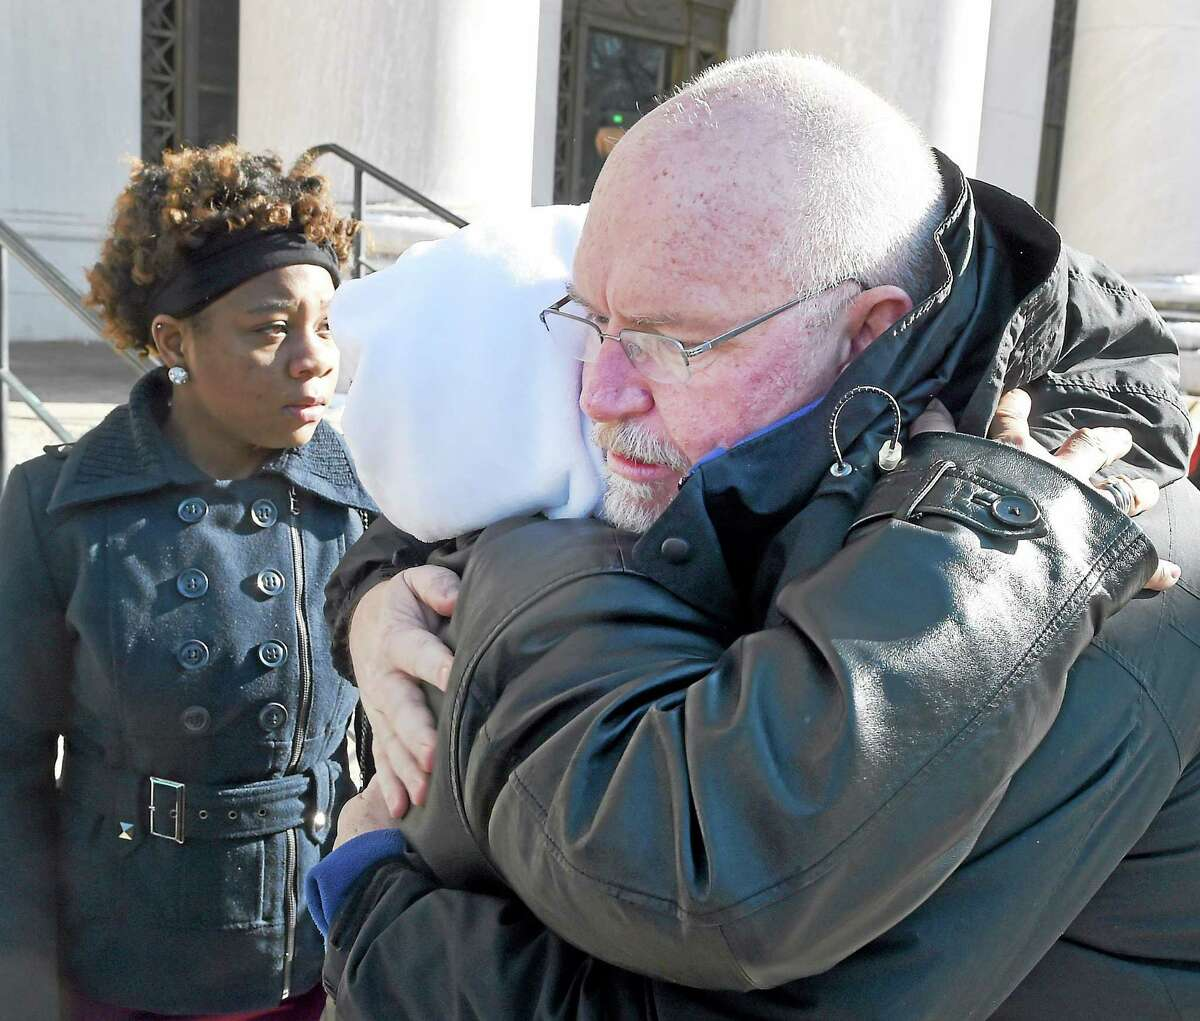 (Peter Hvizdak - New Haven Register) Lynn Roberson of New Haven and FBI Agent James Lawton hug outside the Federal Courthouse in New Haven after Hector Natal of New Haven gets life imprisonment sentence Wednesday, February 25, 2015 for the 2011 triple fatal arson fire at a New Haven apartment building. Roberson's sister Wanda was killed in the fire.